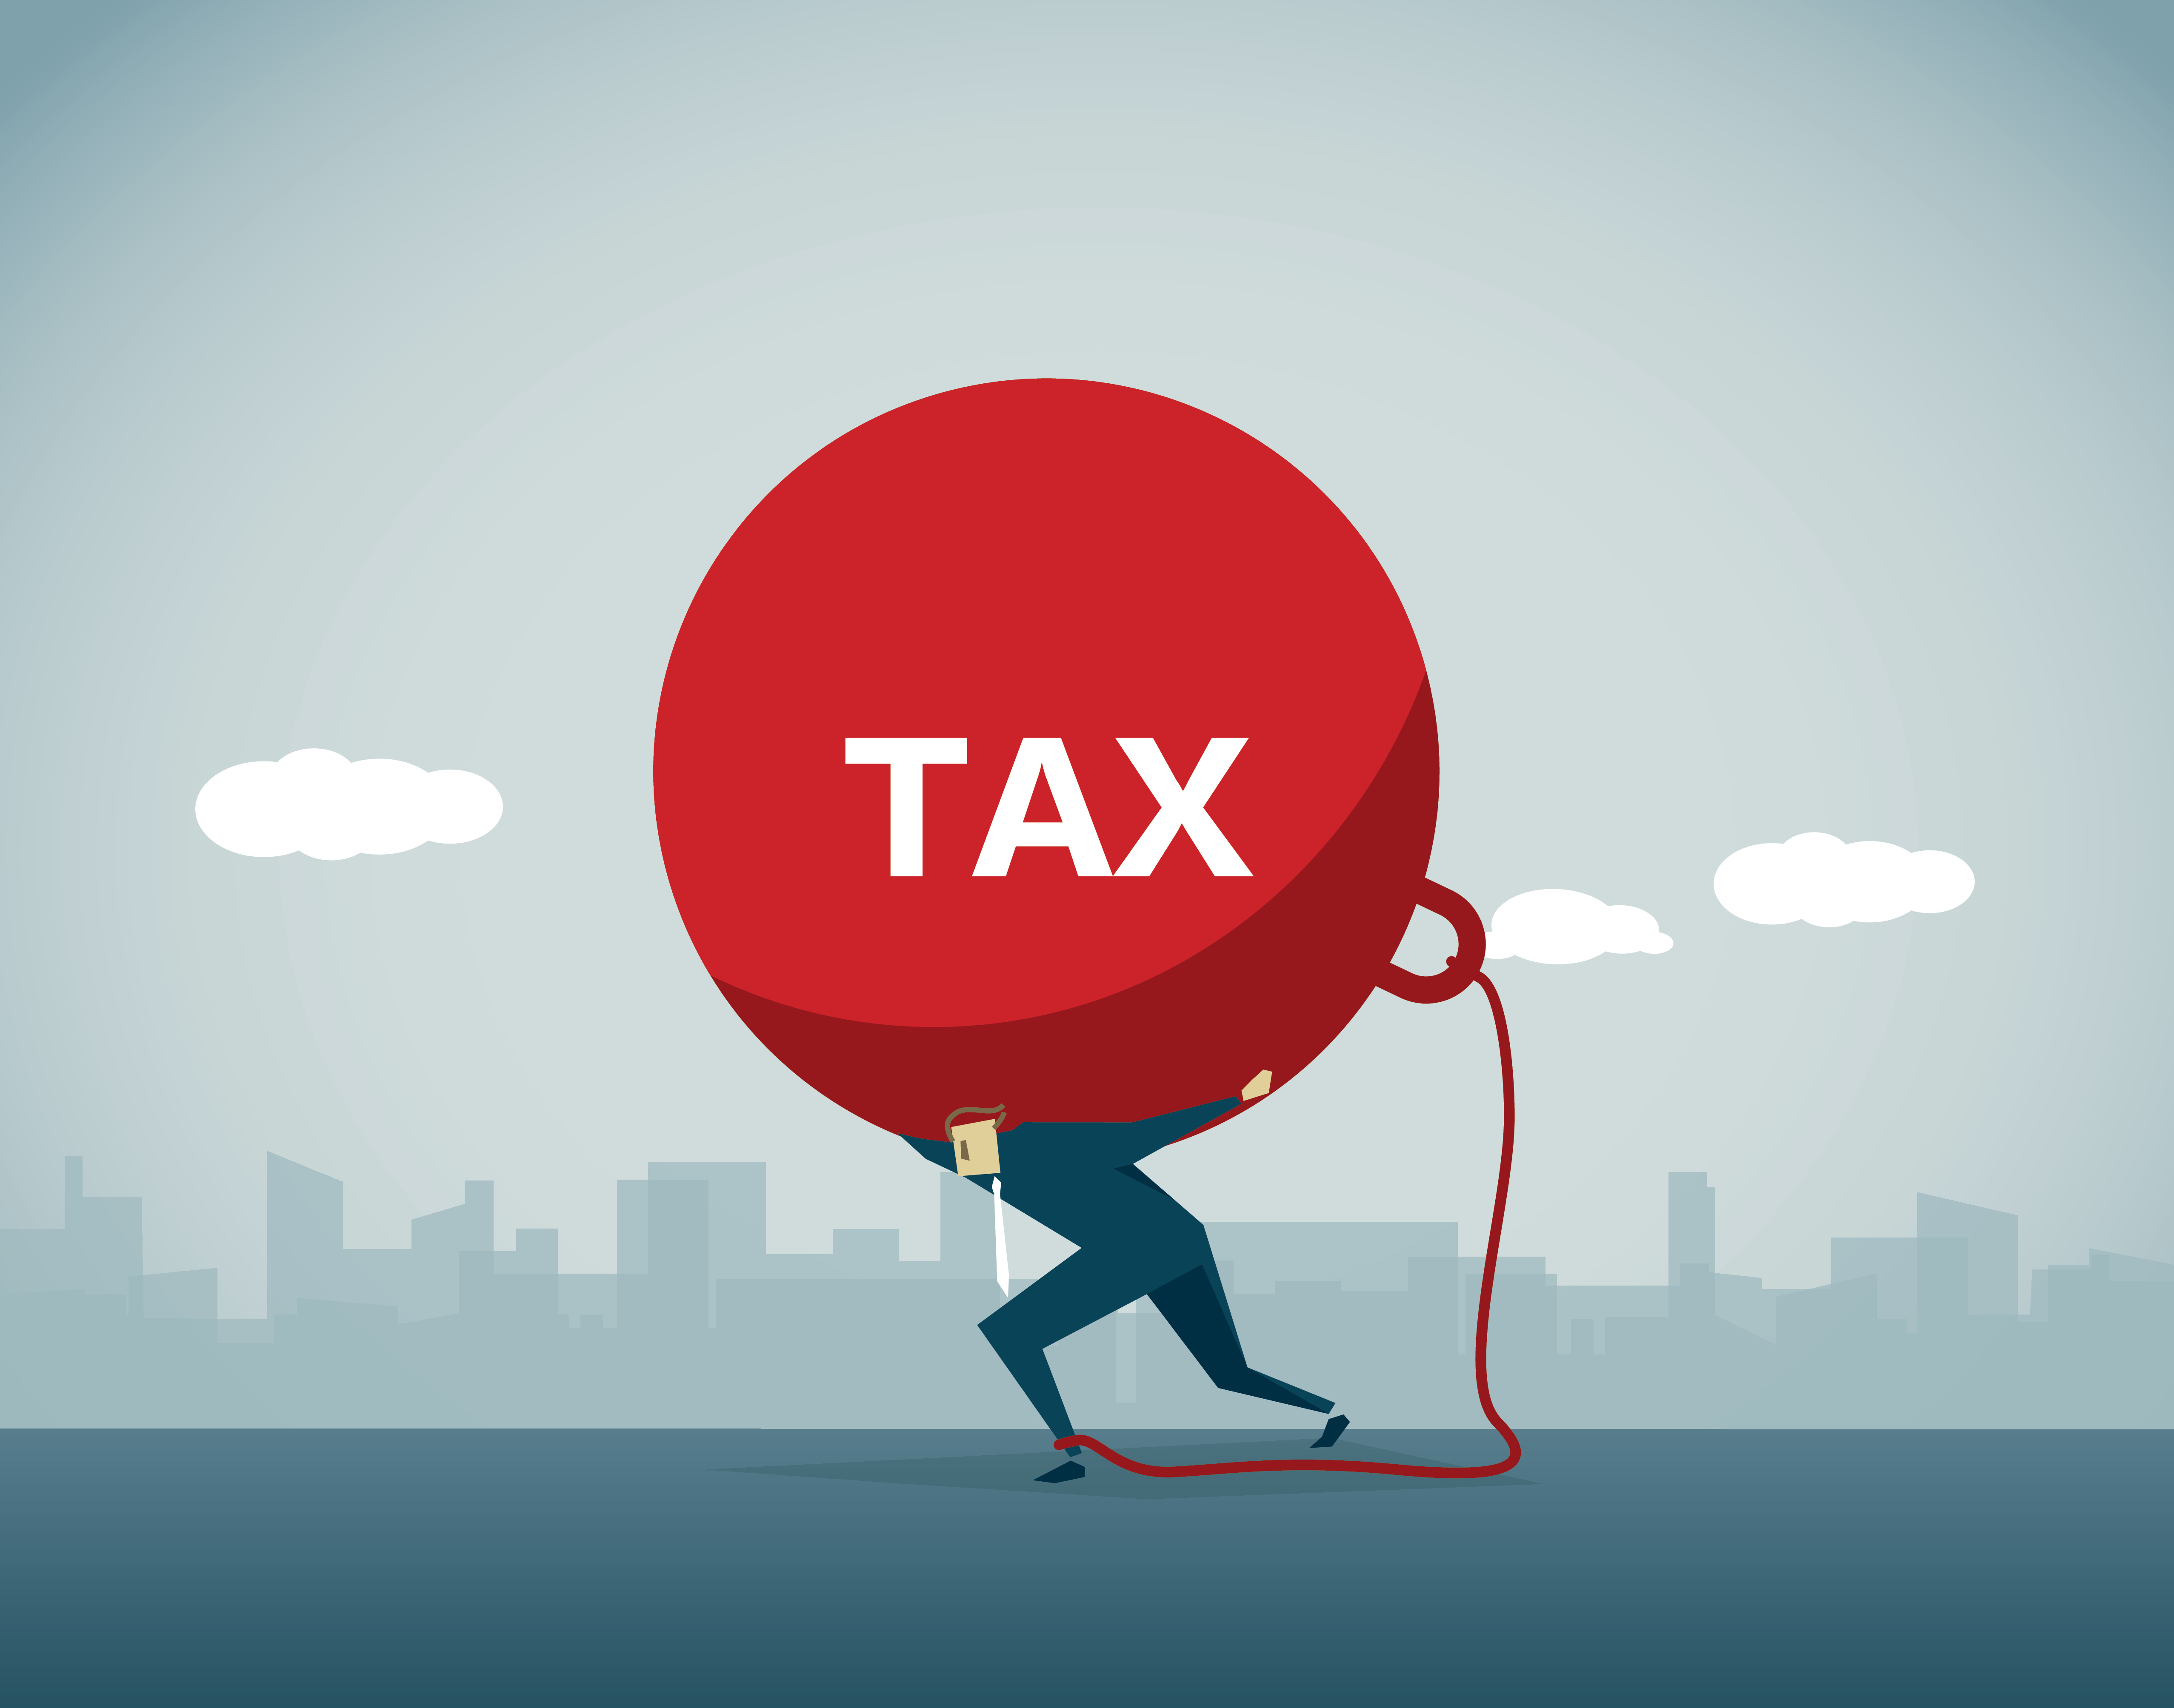 Making tax-wise decisions delivers you $ savings Image